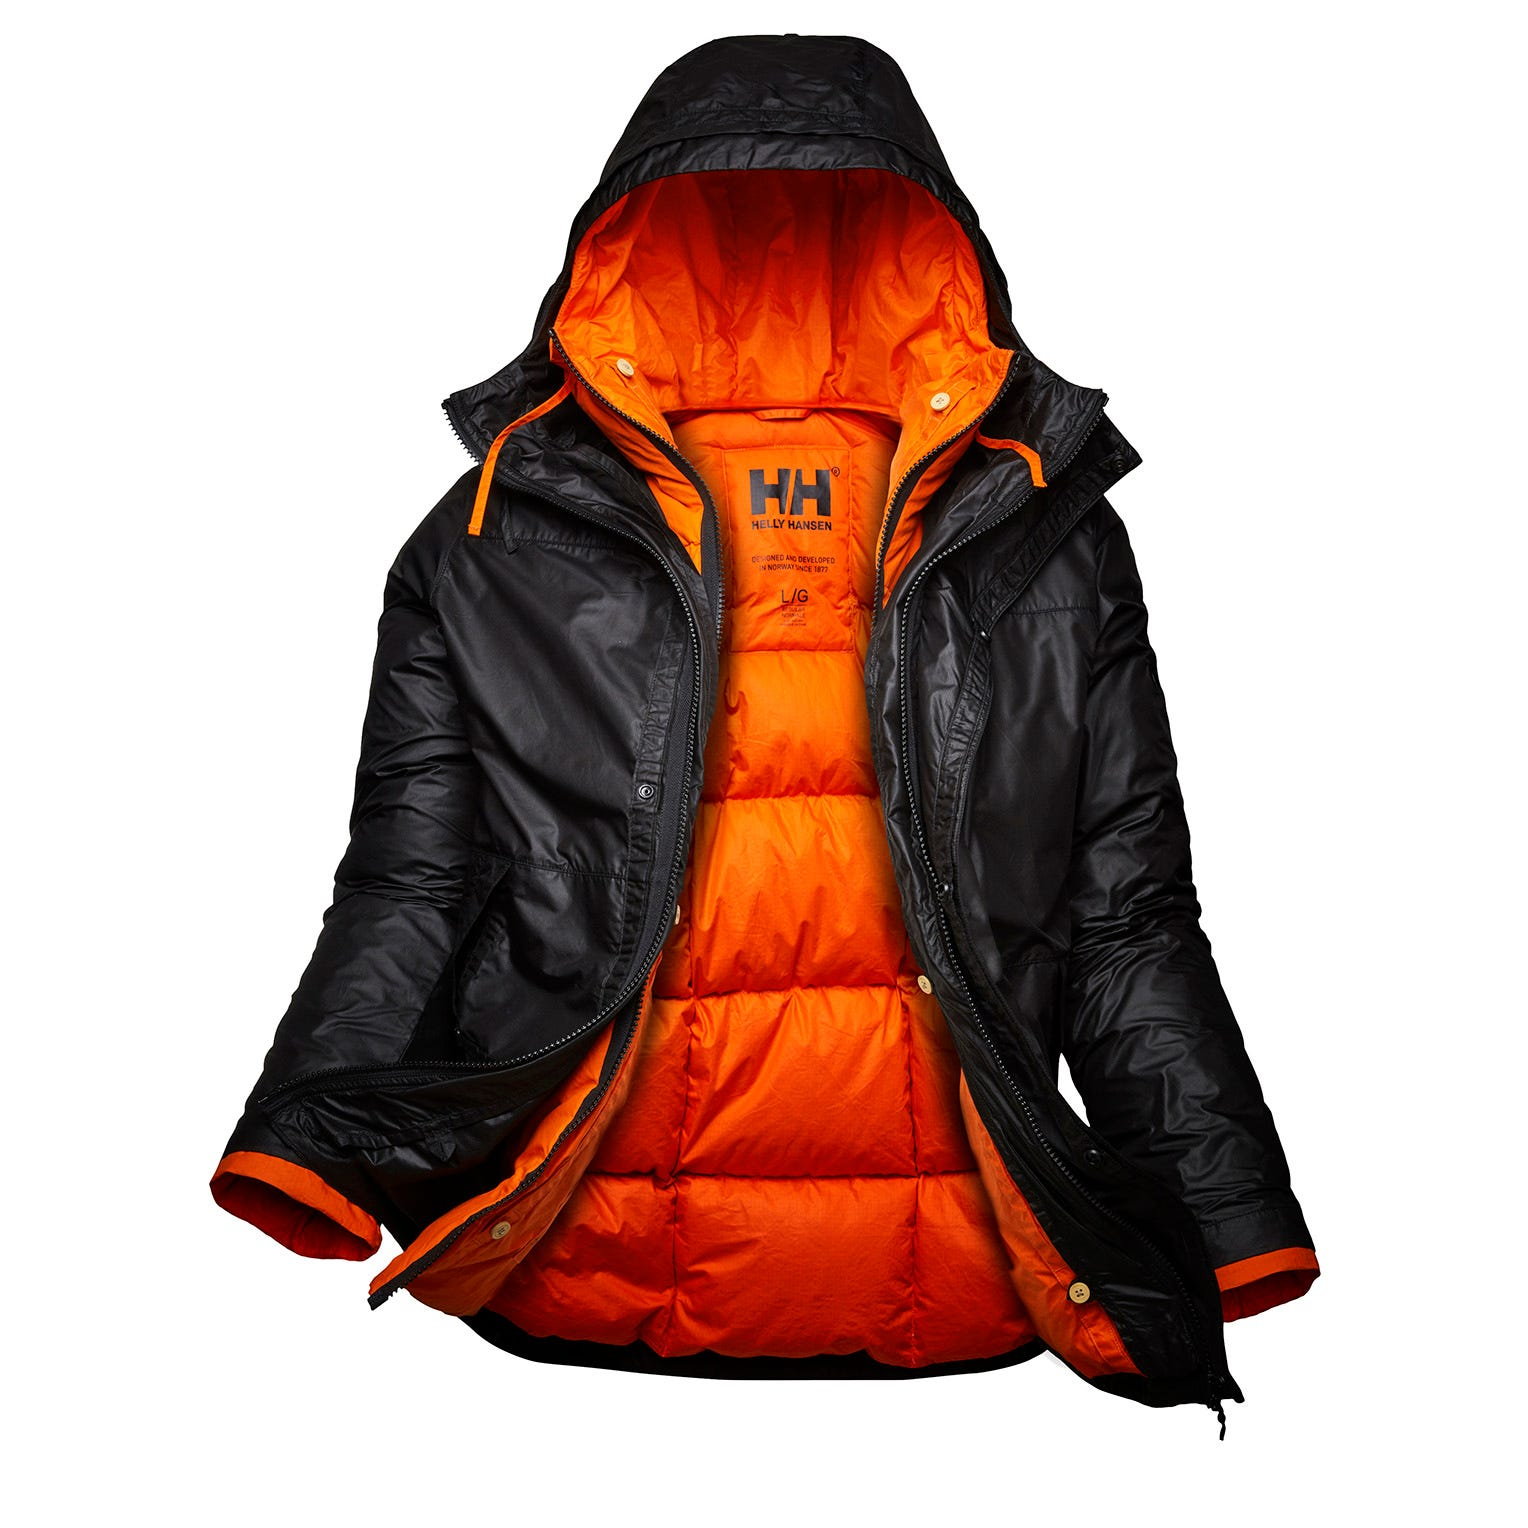 Helly Hansen Mens Arctic Patrol 3-in-1 Jacket Parka Black S